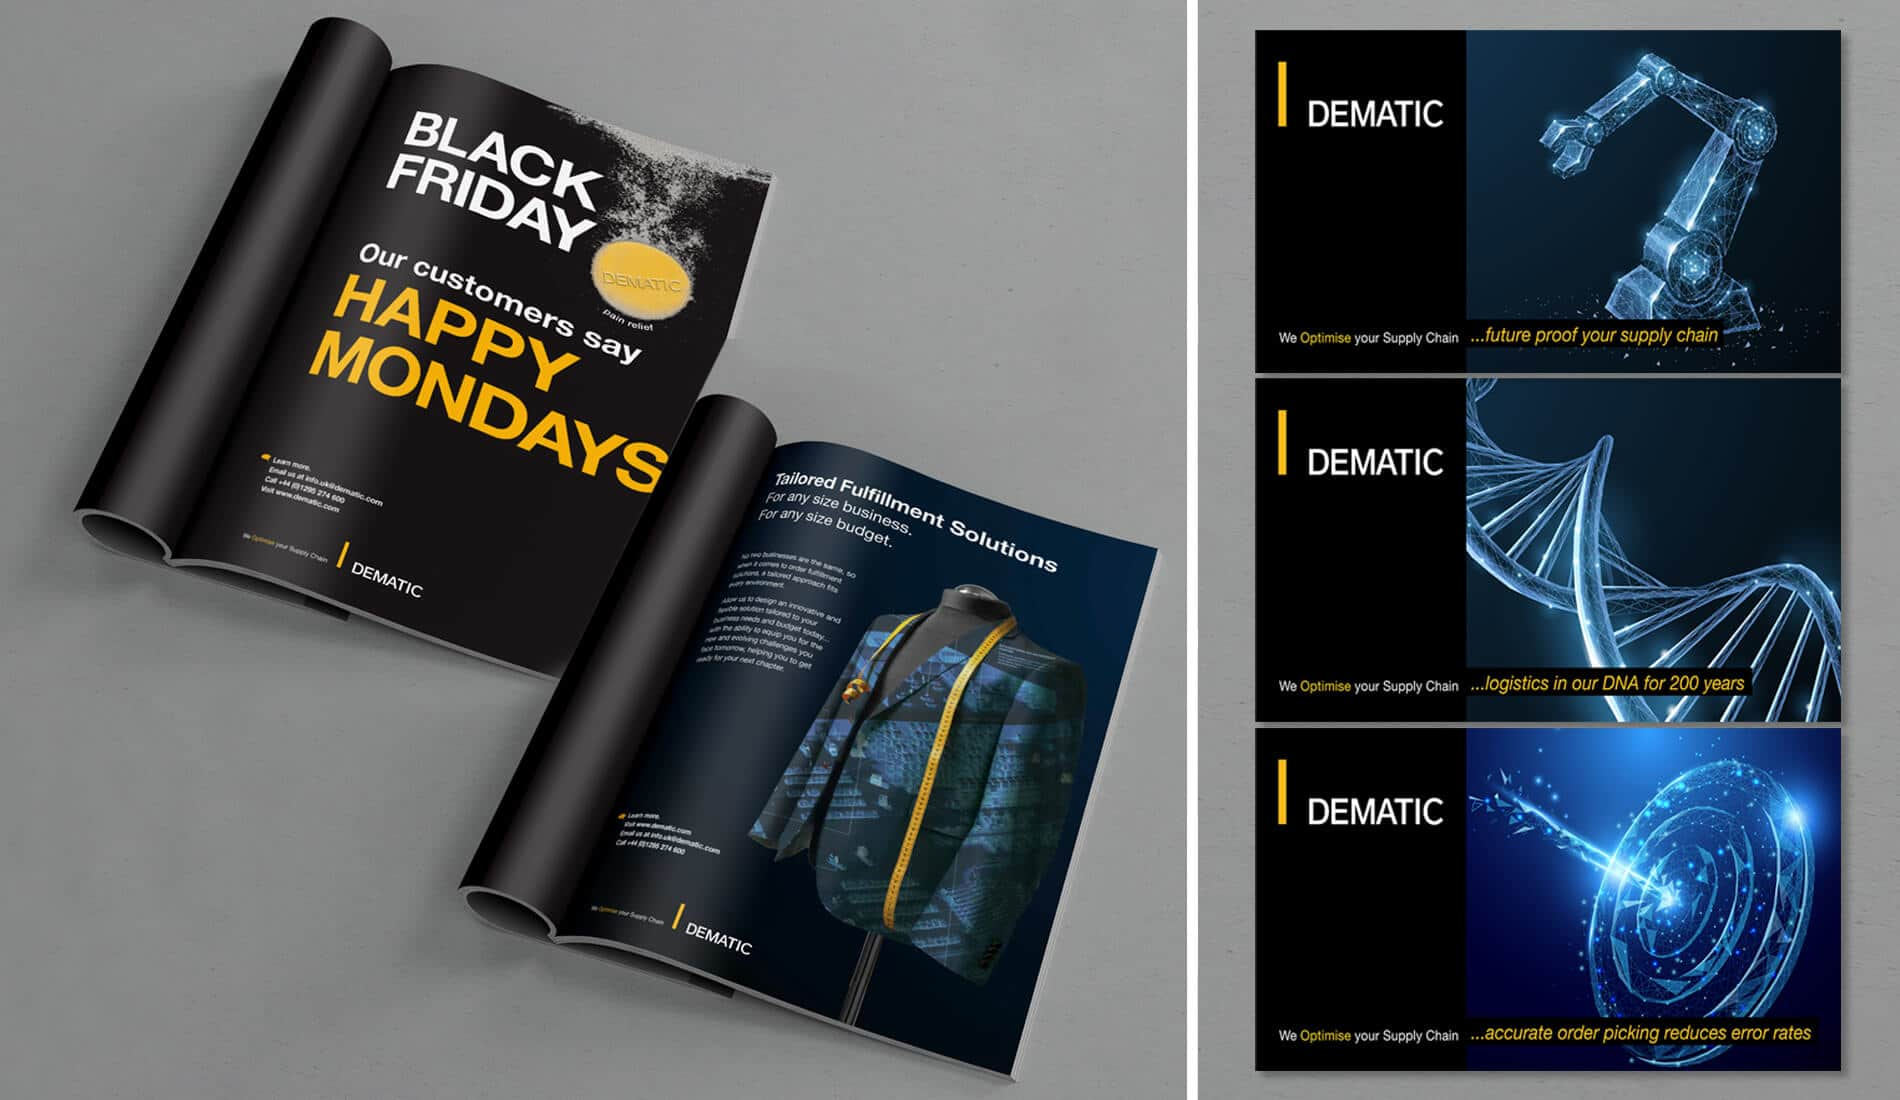 Advertising campaigned designed for dematic, digital online artwork and printed designs for magazines